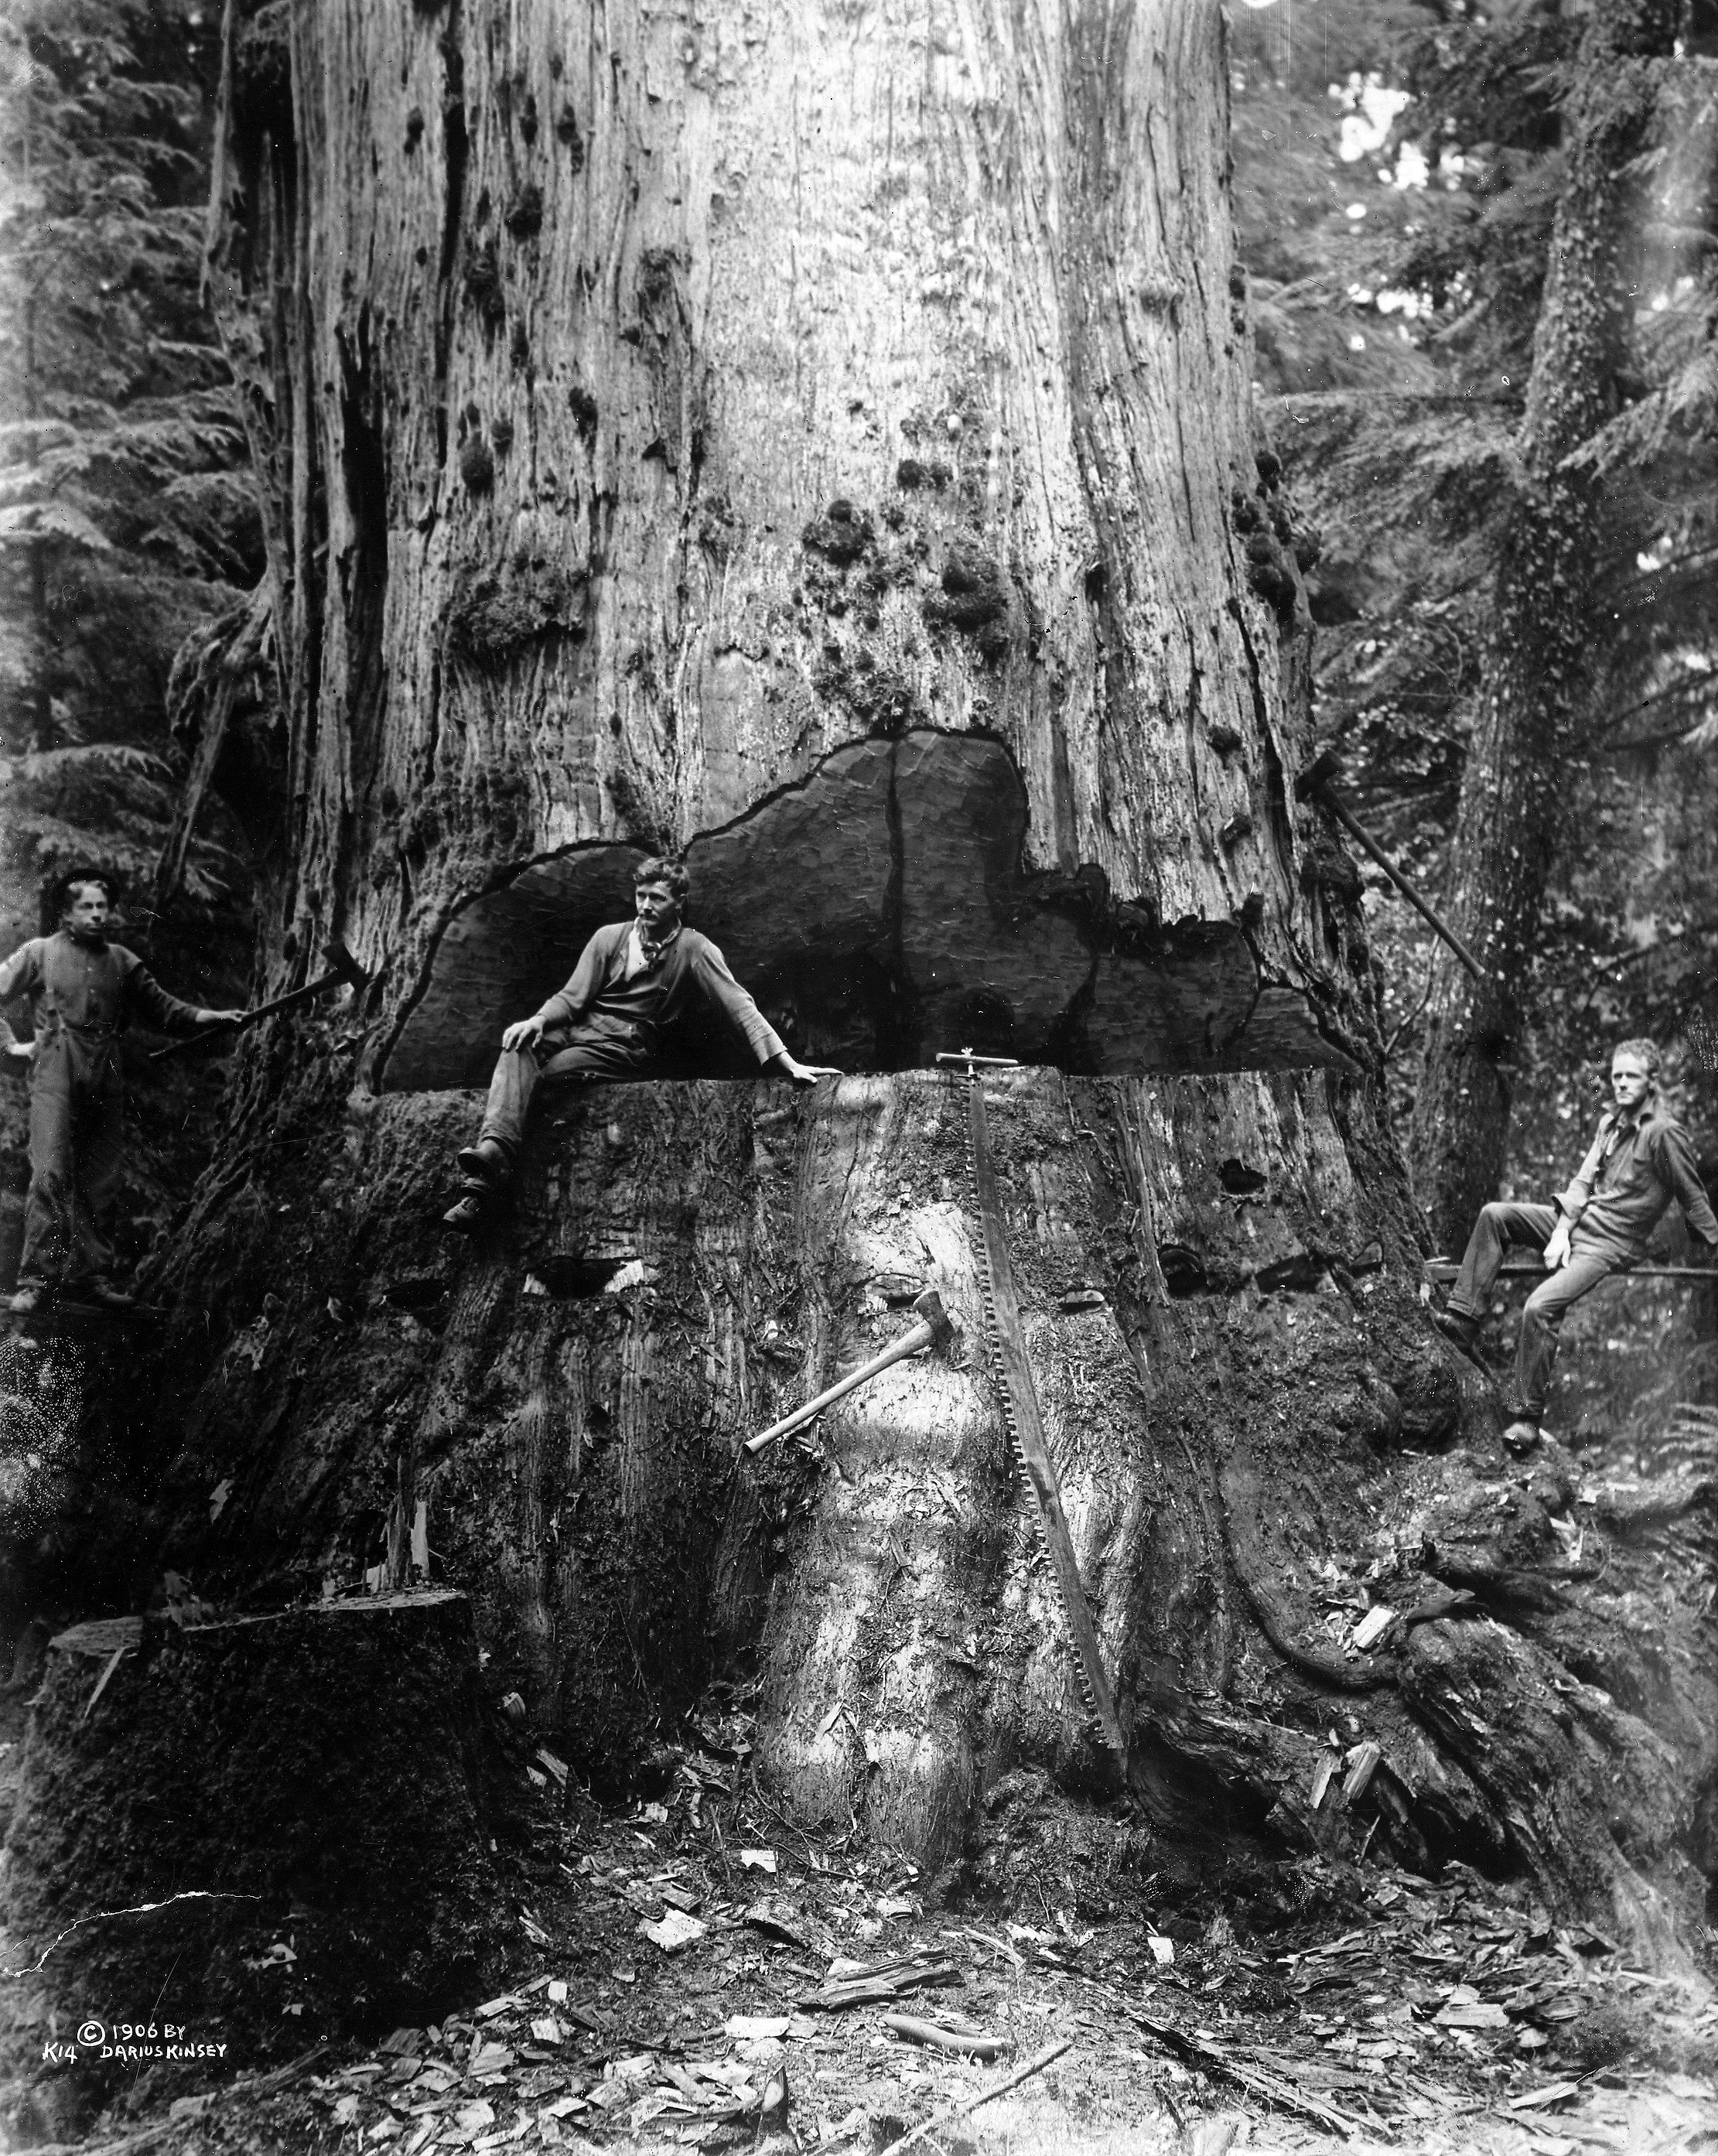 Early logging photos show the taming — and tarnishing — of